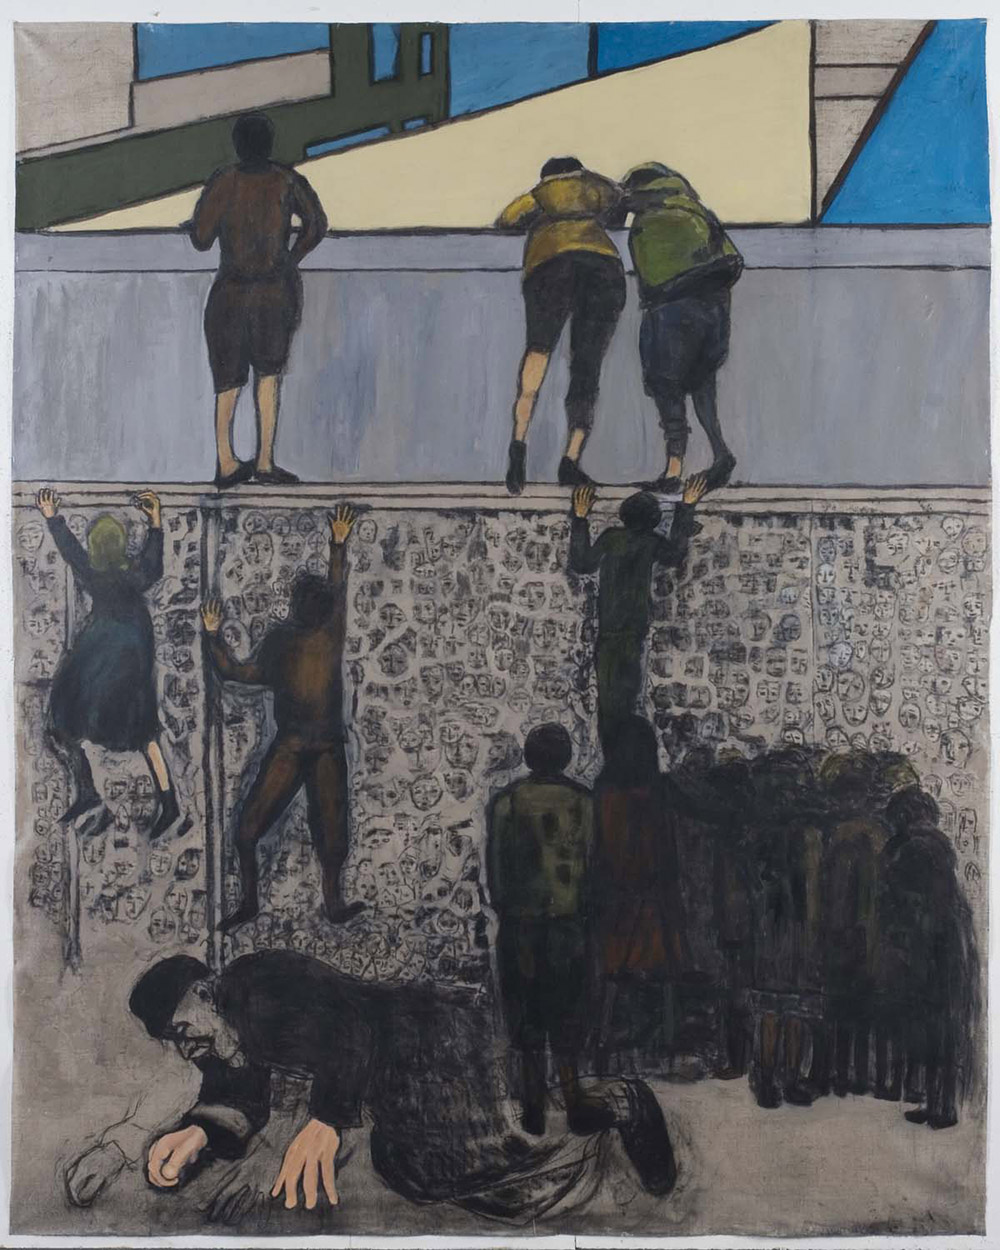 5.-Ono-Warsaw-Ghetto-Uprising-Give-Us-Our-Daily-Bread-2010.-Charcoal-and-acrylic-on-canvas-2.13-x-1.7-m-x.jpg